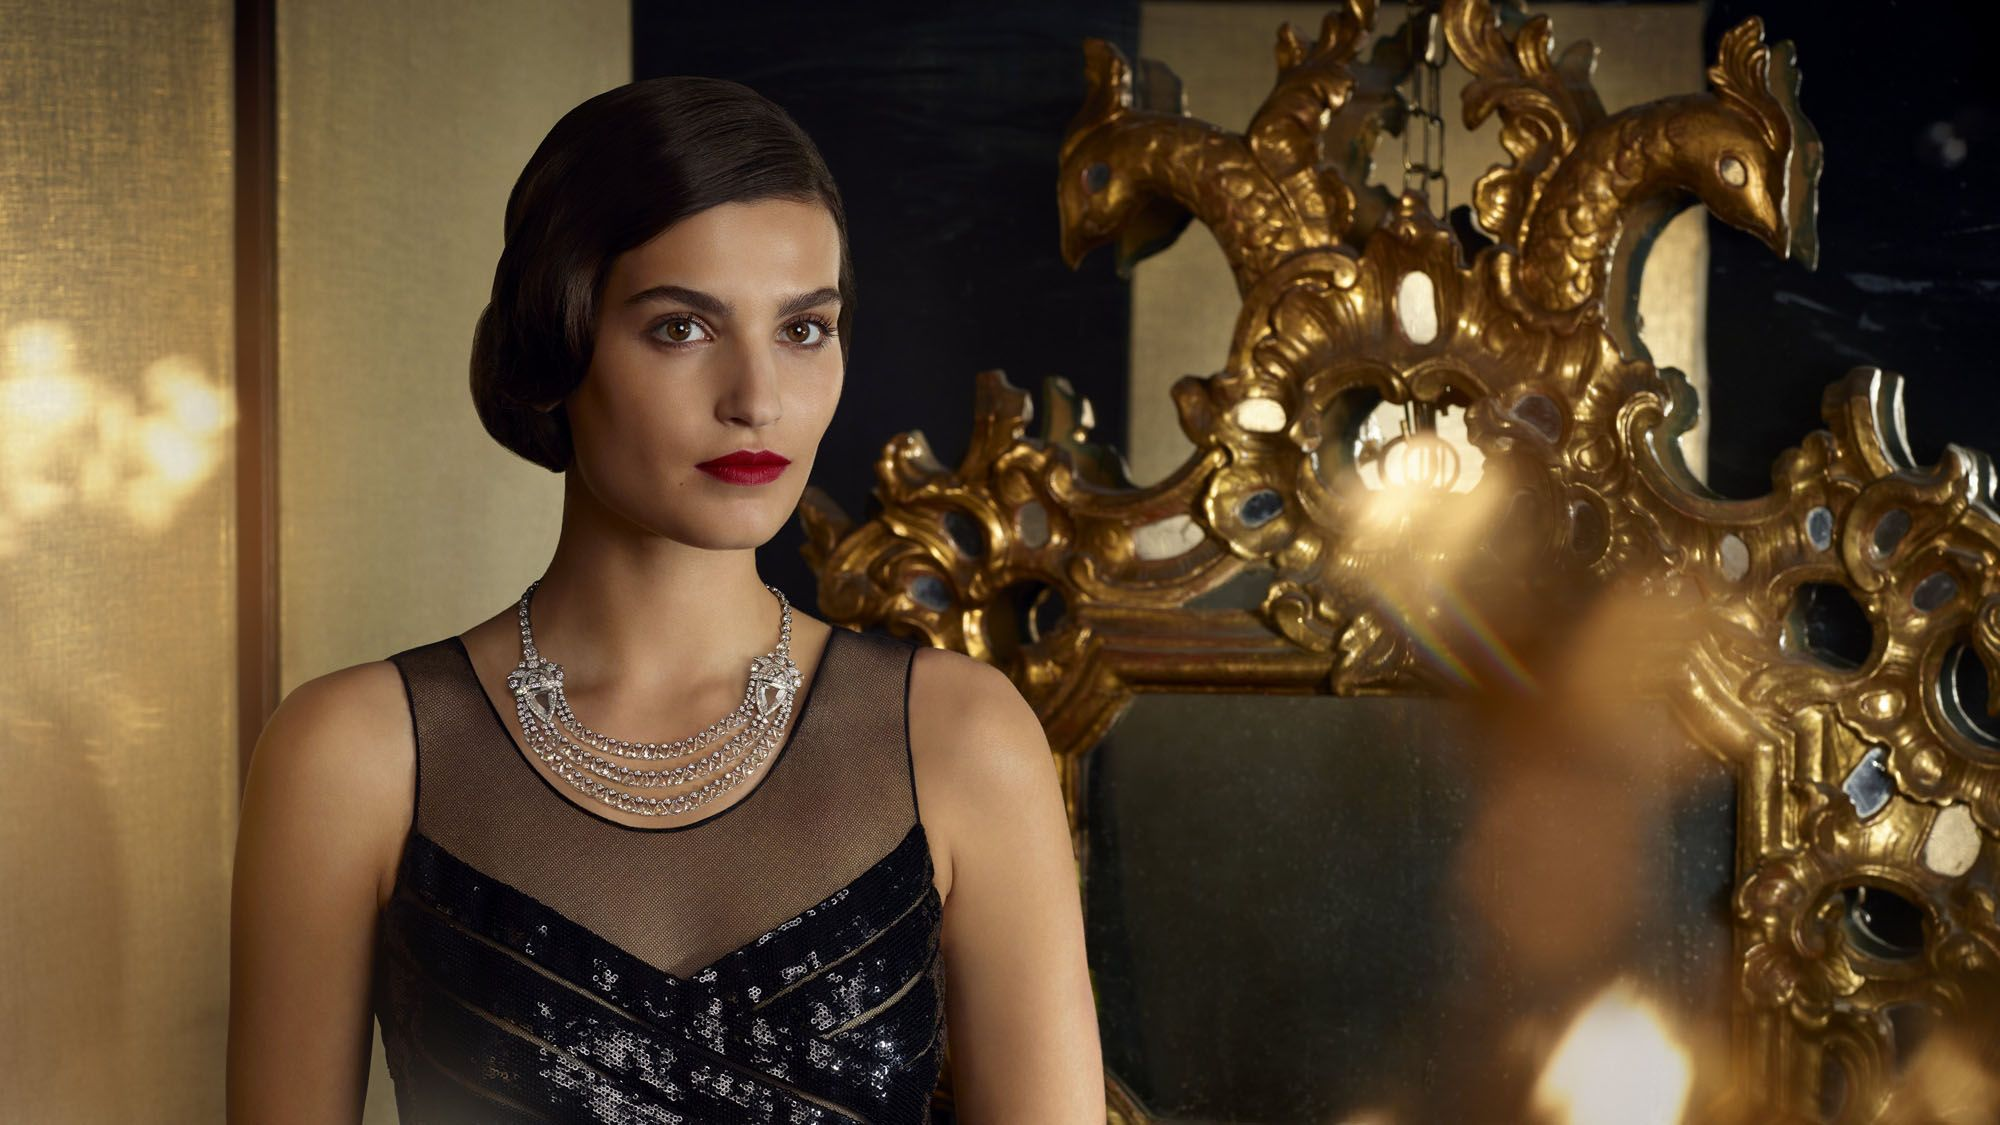 Chanel's Latest High Jewellery Collection Takes Inspiration From Russia